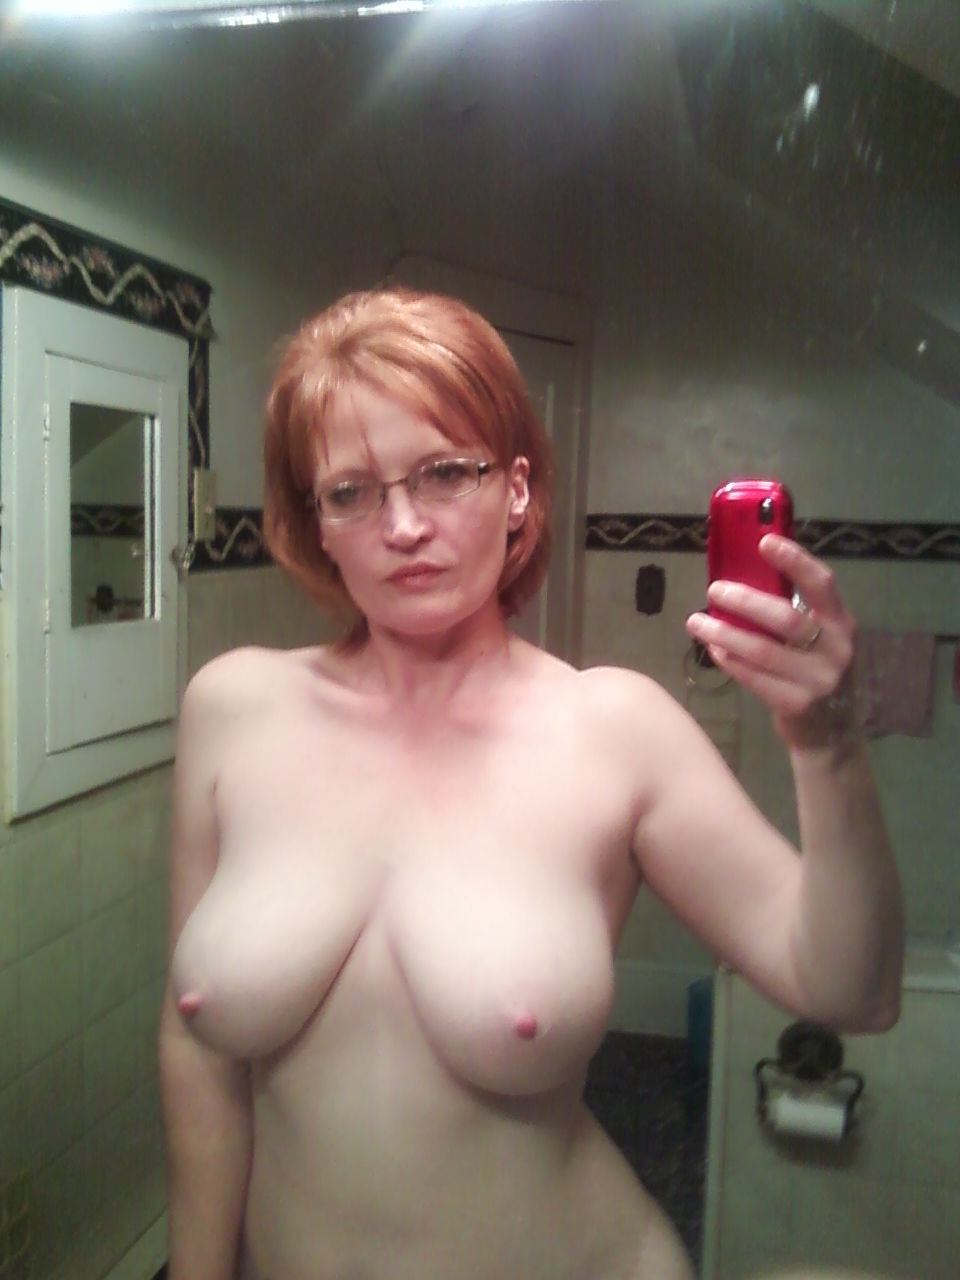 Interesting moment nude women self picture opinion you